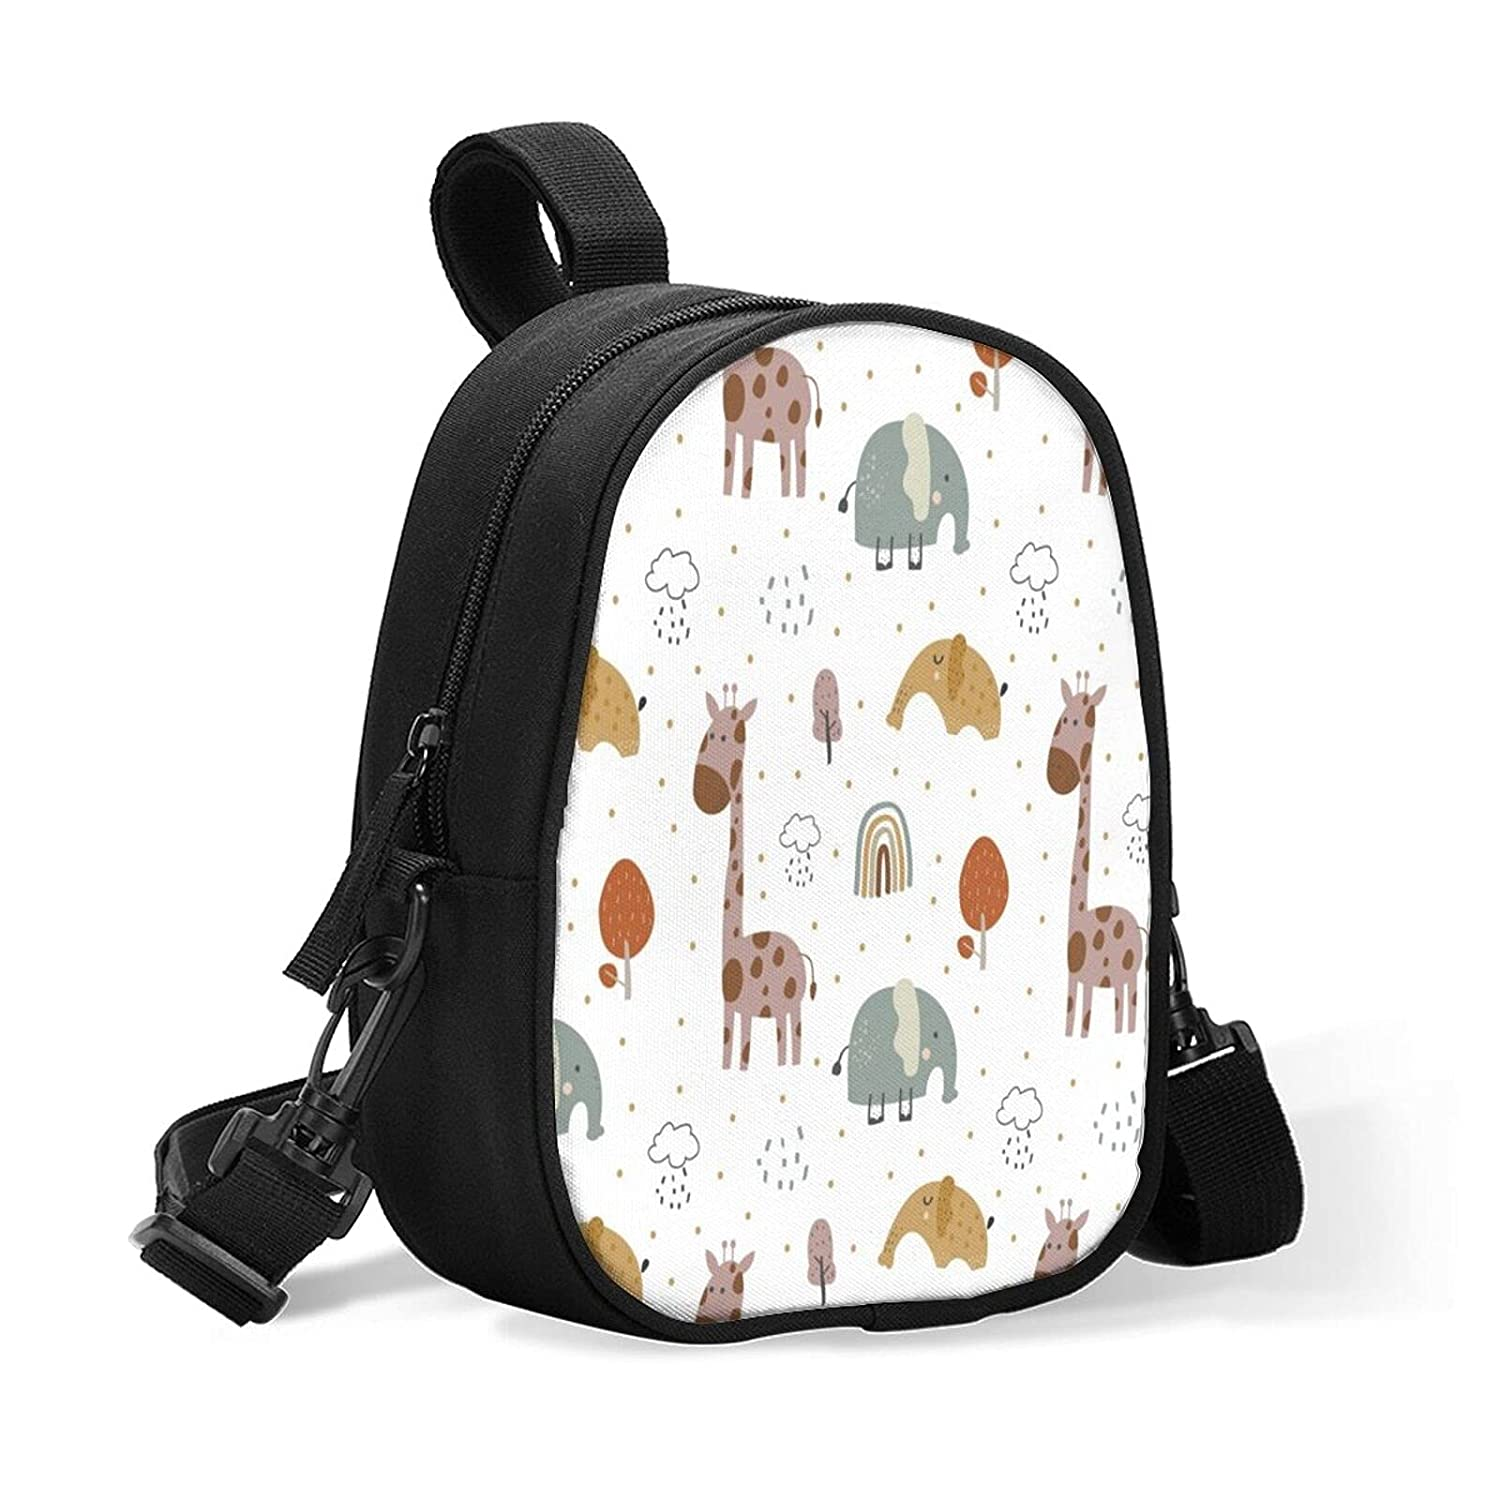 Cute Elephant Bombing free shipping and Ranking TOP16 Giraffe Breastmilk Cooler Baby Travel Bottle